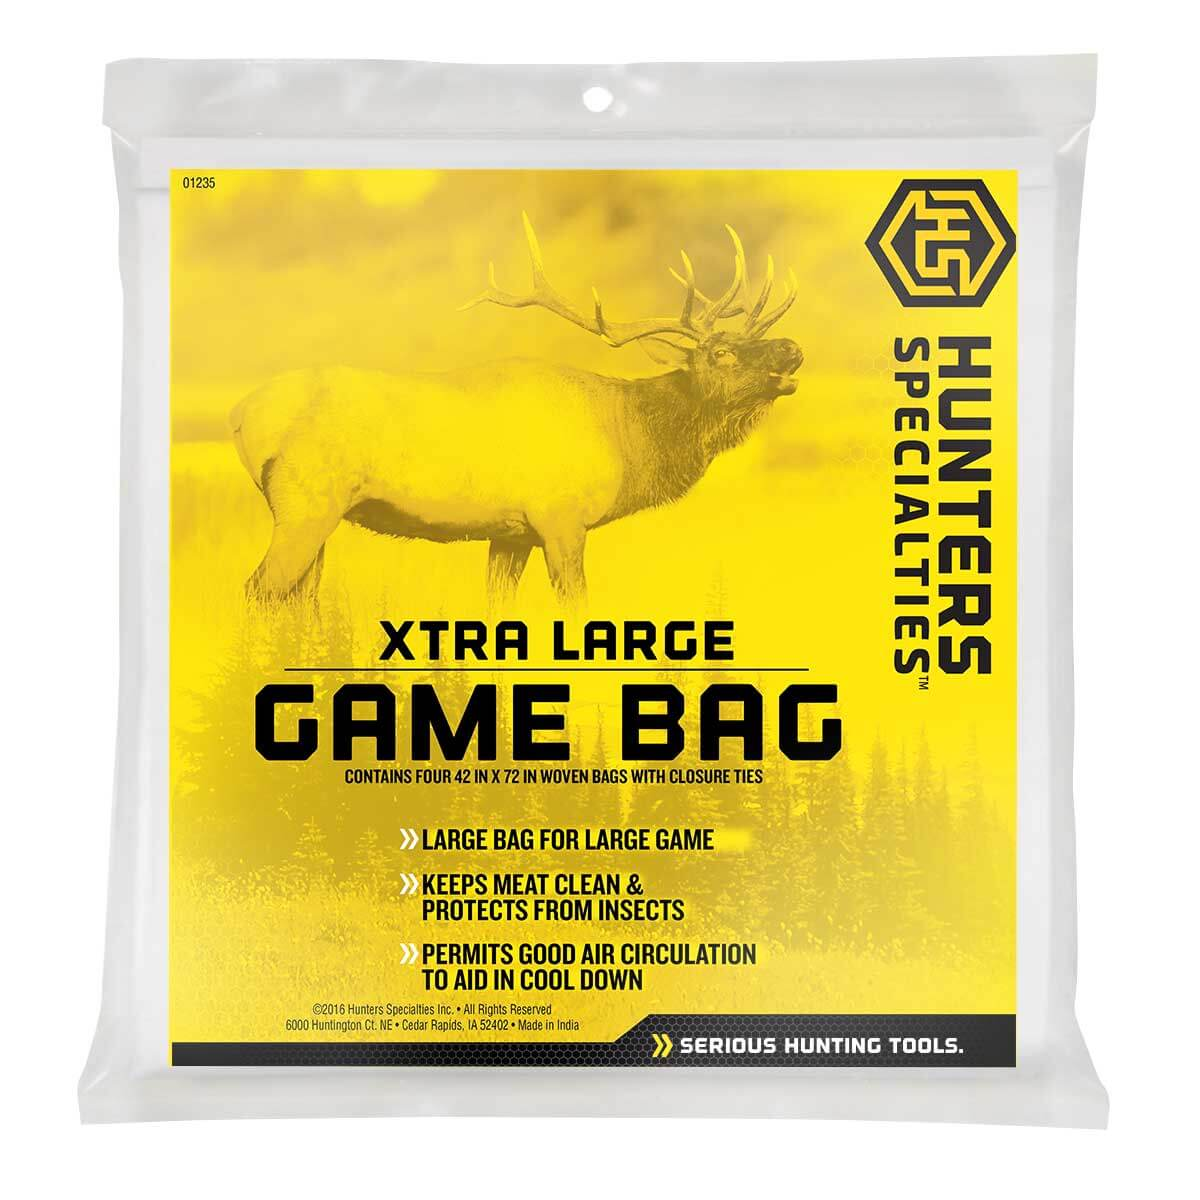 Hunters Specialities Xtra Large Game Bag